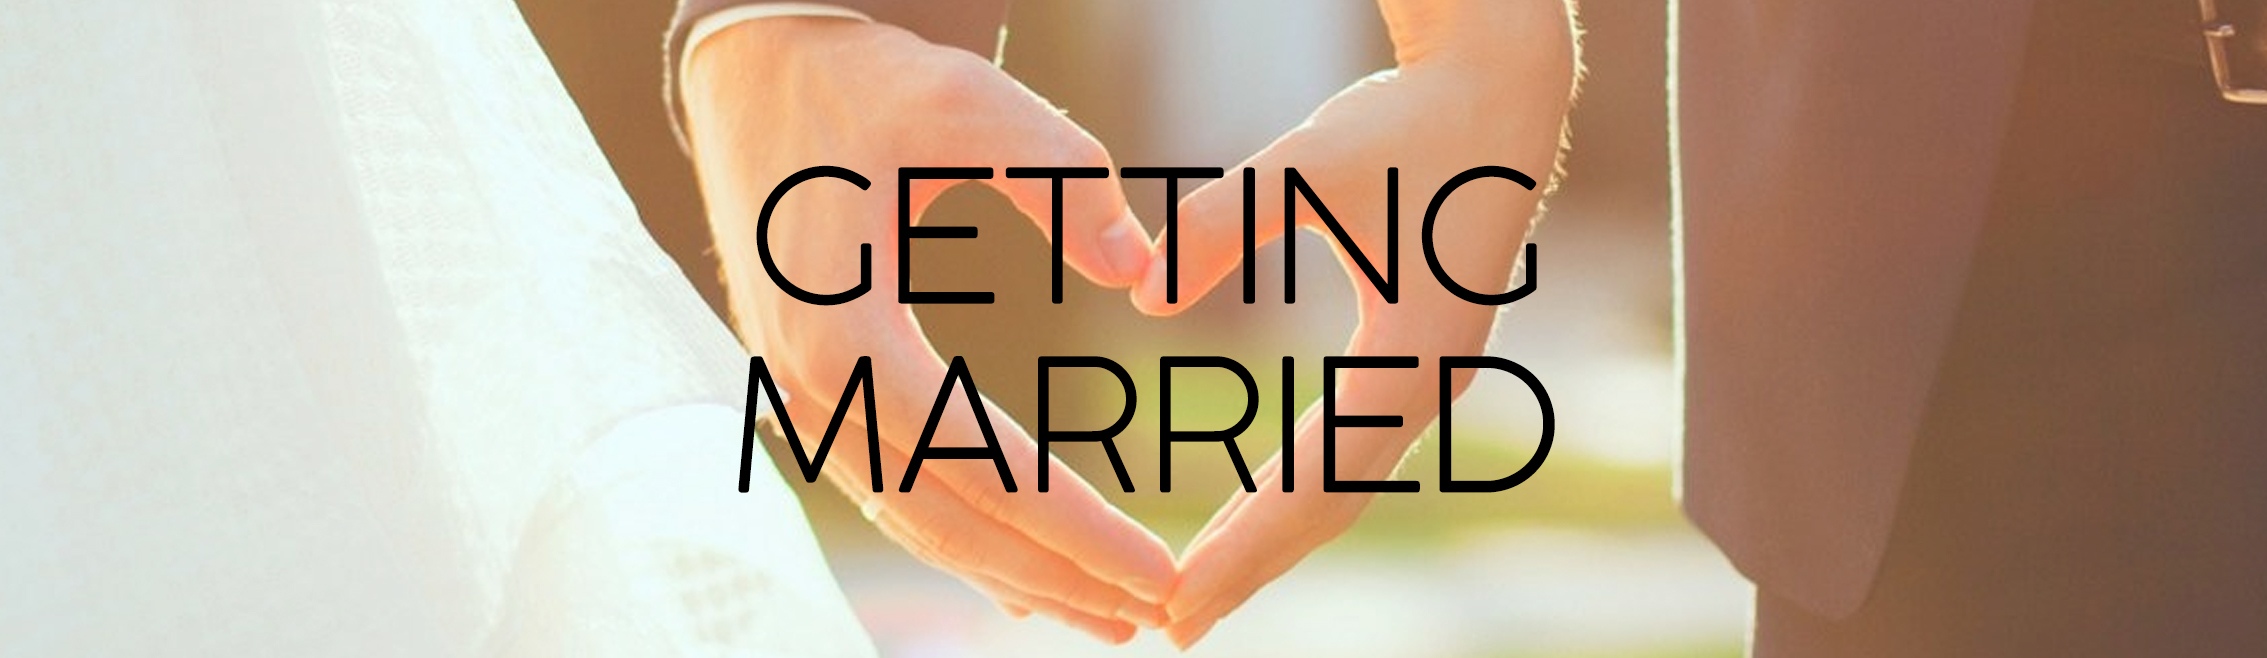 GETTING MARRIED HEADER IMAGE.jpg